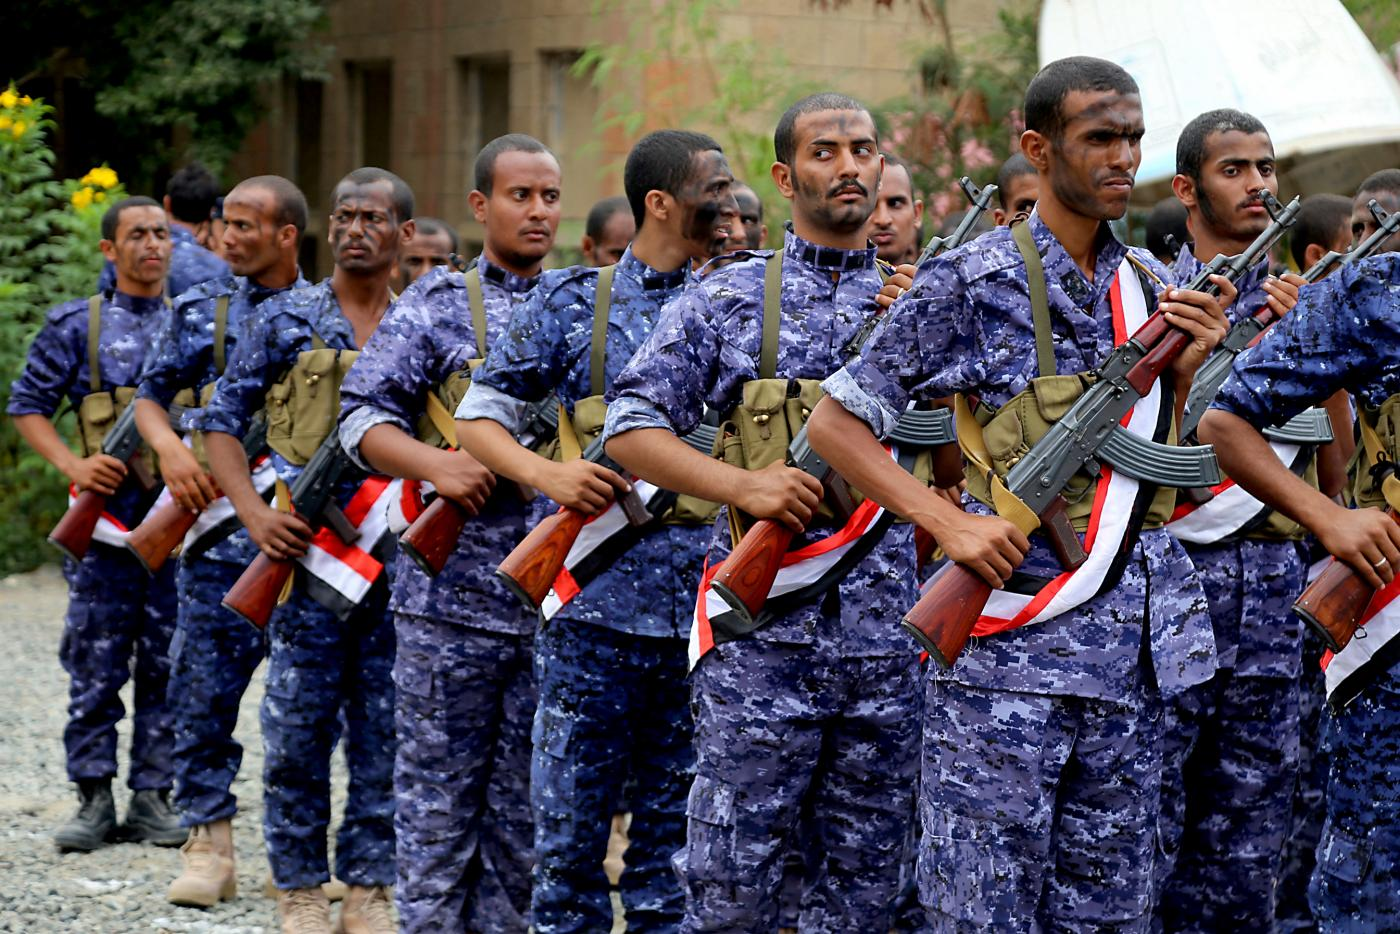 Yemeni fighters from the Popular Resistance take part in a graduation ceremony in the city of Taiz, on 5 August 2019 (AFP)